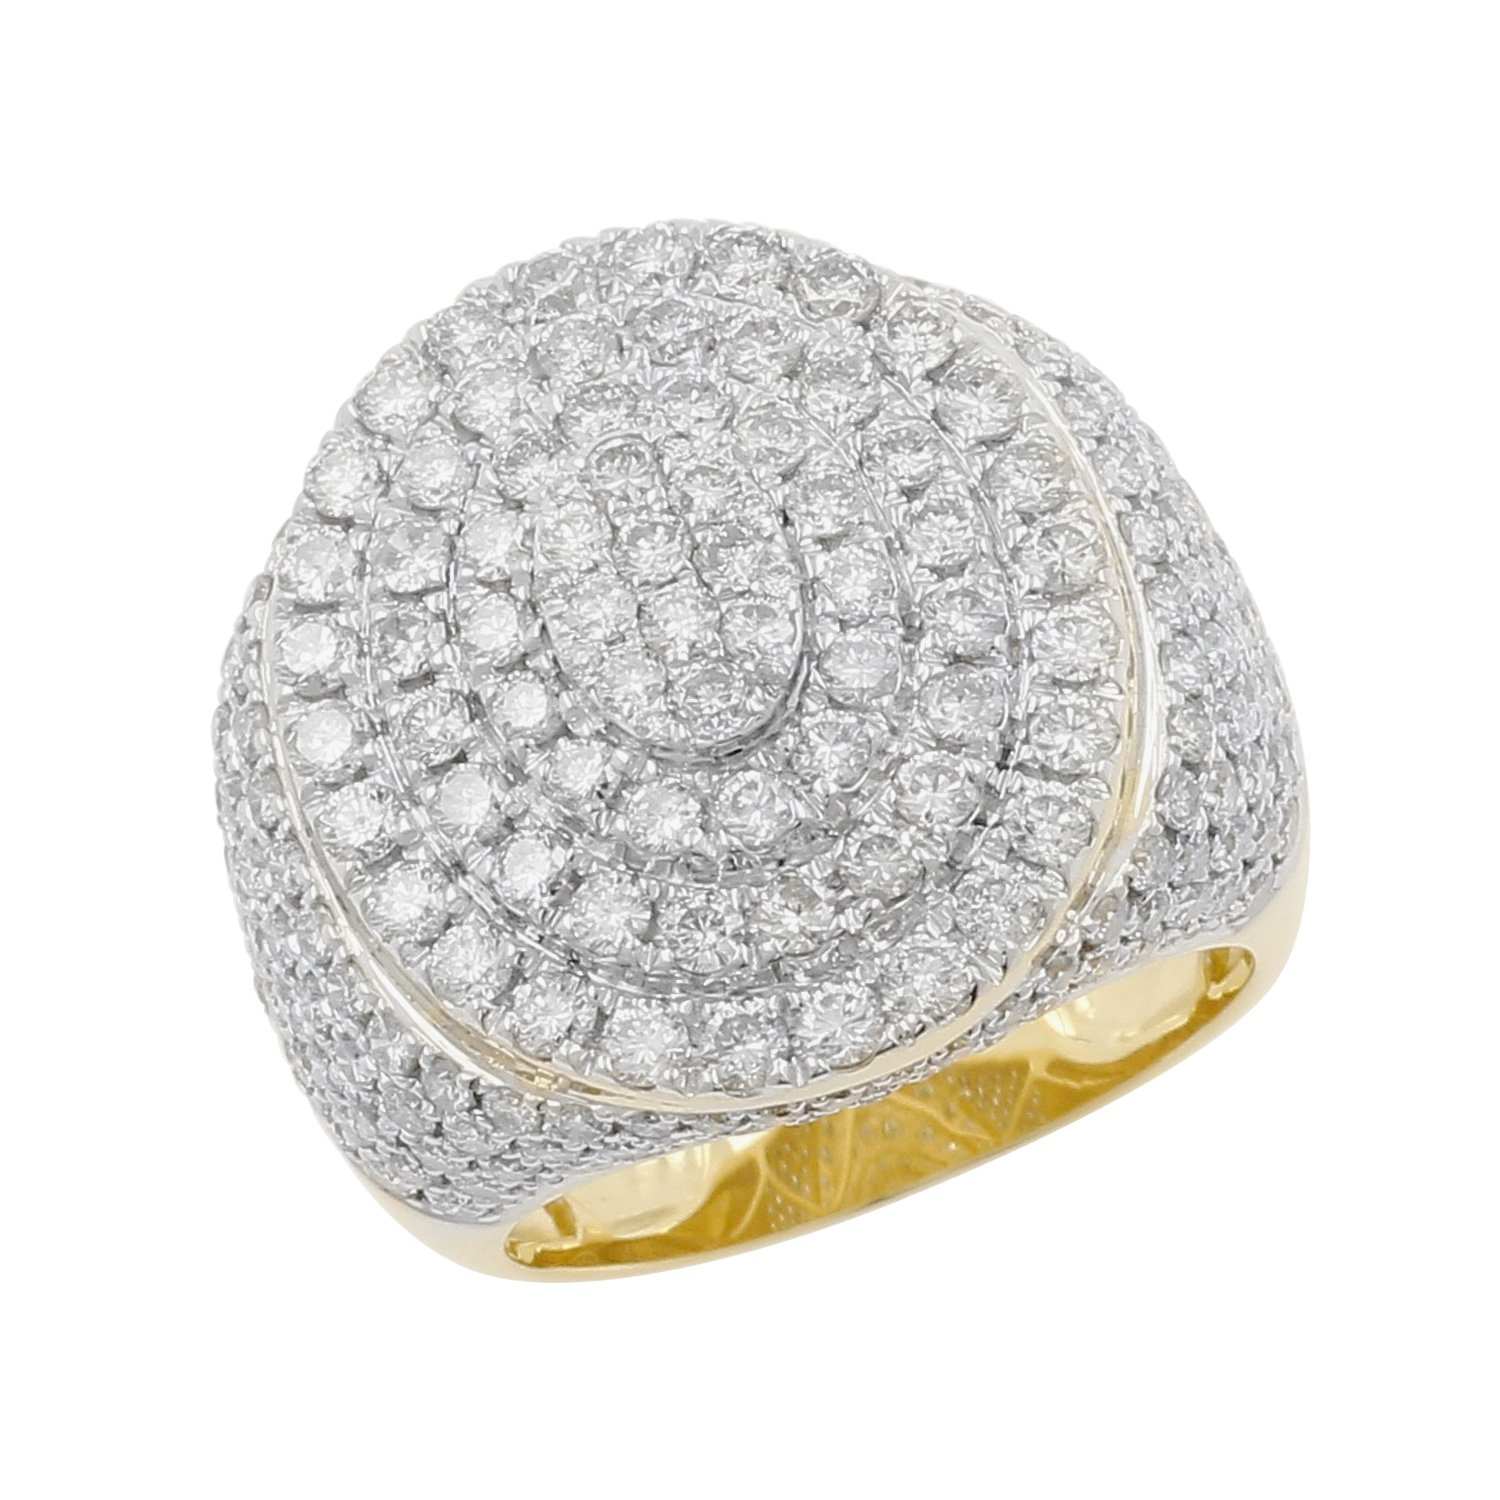 5.70 Carat 10kt Yellow Gold Diamond Cluster Men's Statement Pinky Ring